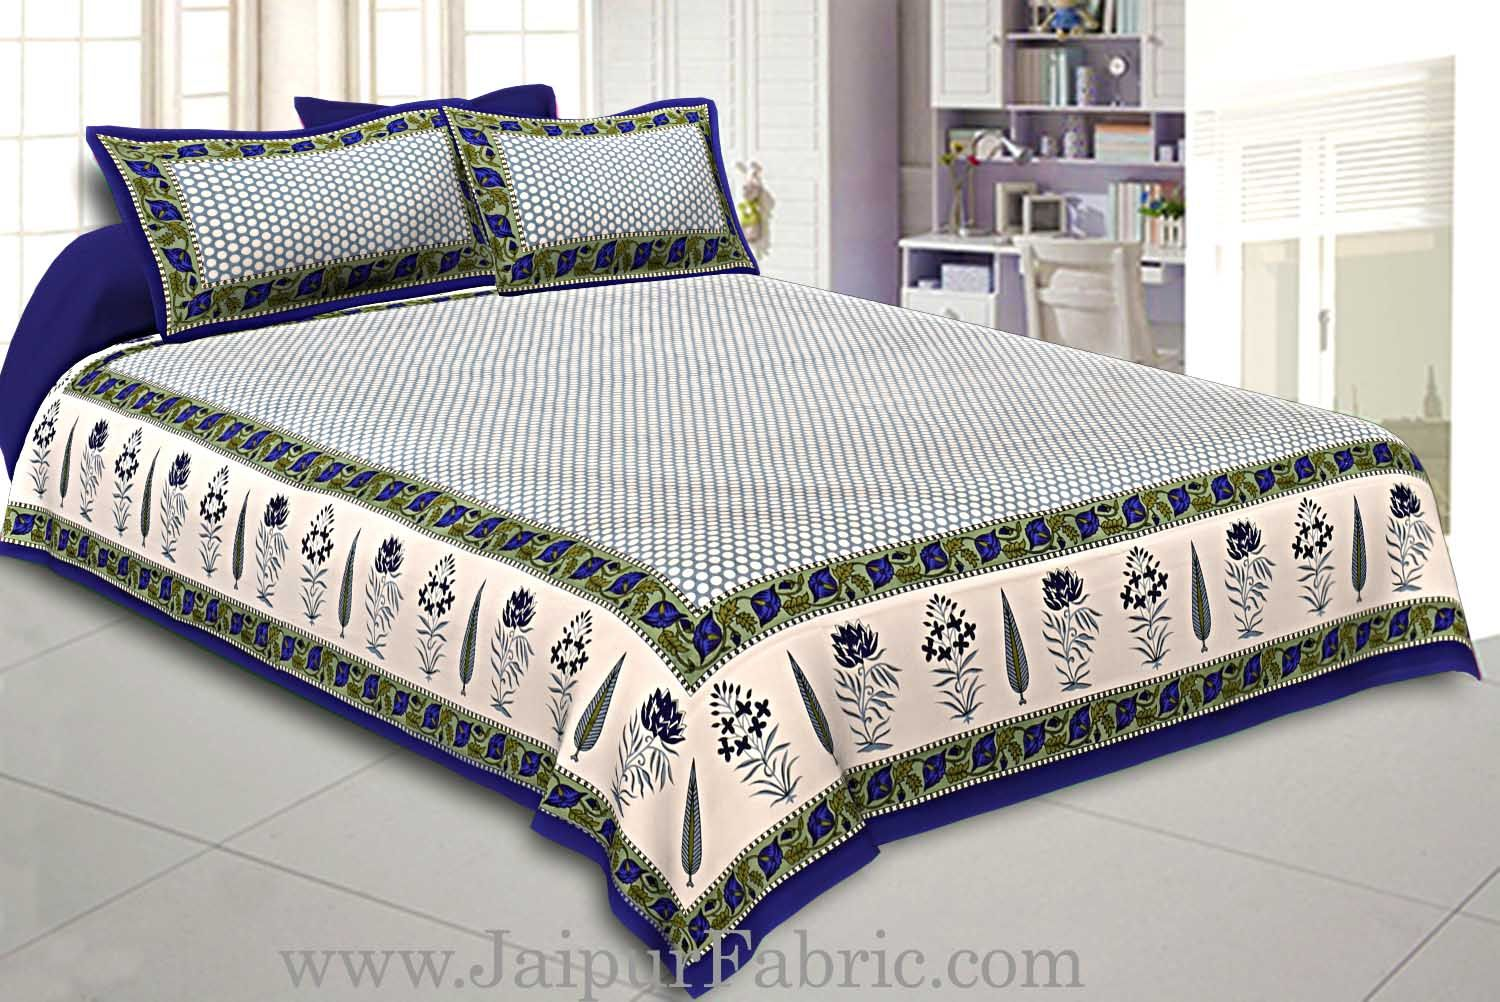 Double Bedsheet New Look Super Fine Cotton Blue Border